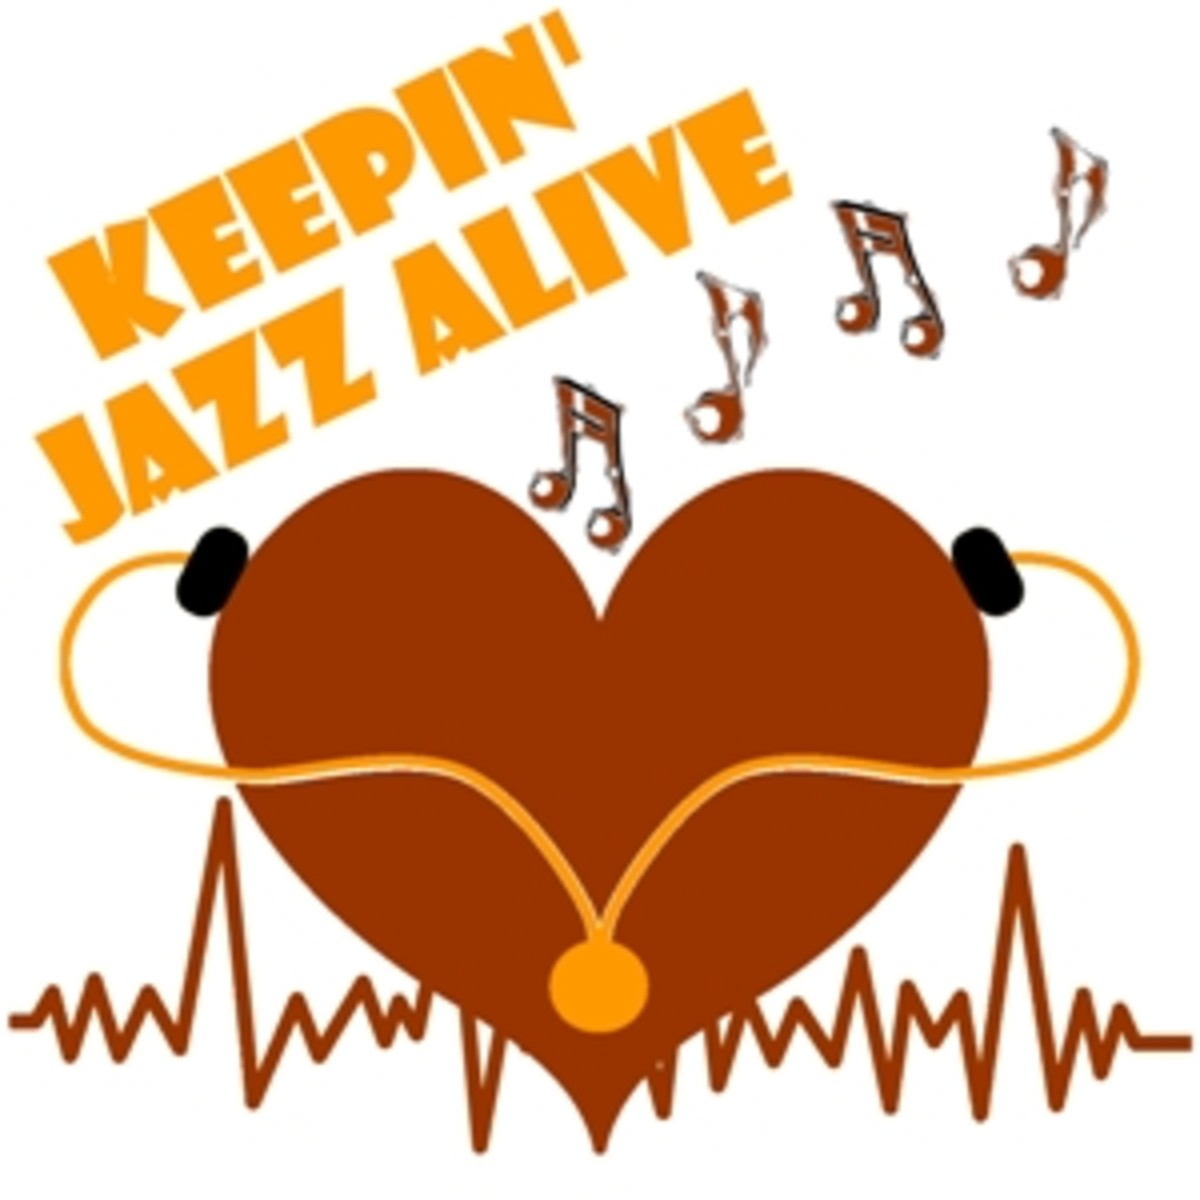 Many say that Jazz and Blues are among America's greatest cultural achievements and exports to the world community. Today, Jazz music is played, studied and taught at private and public institutions all around the globe.